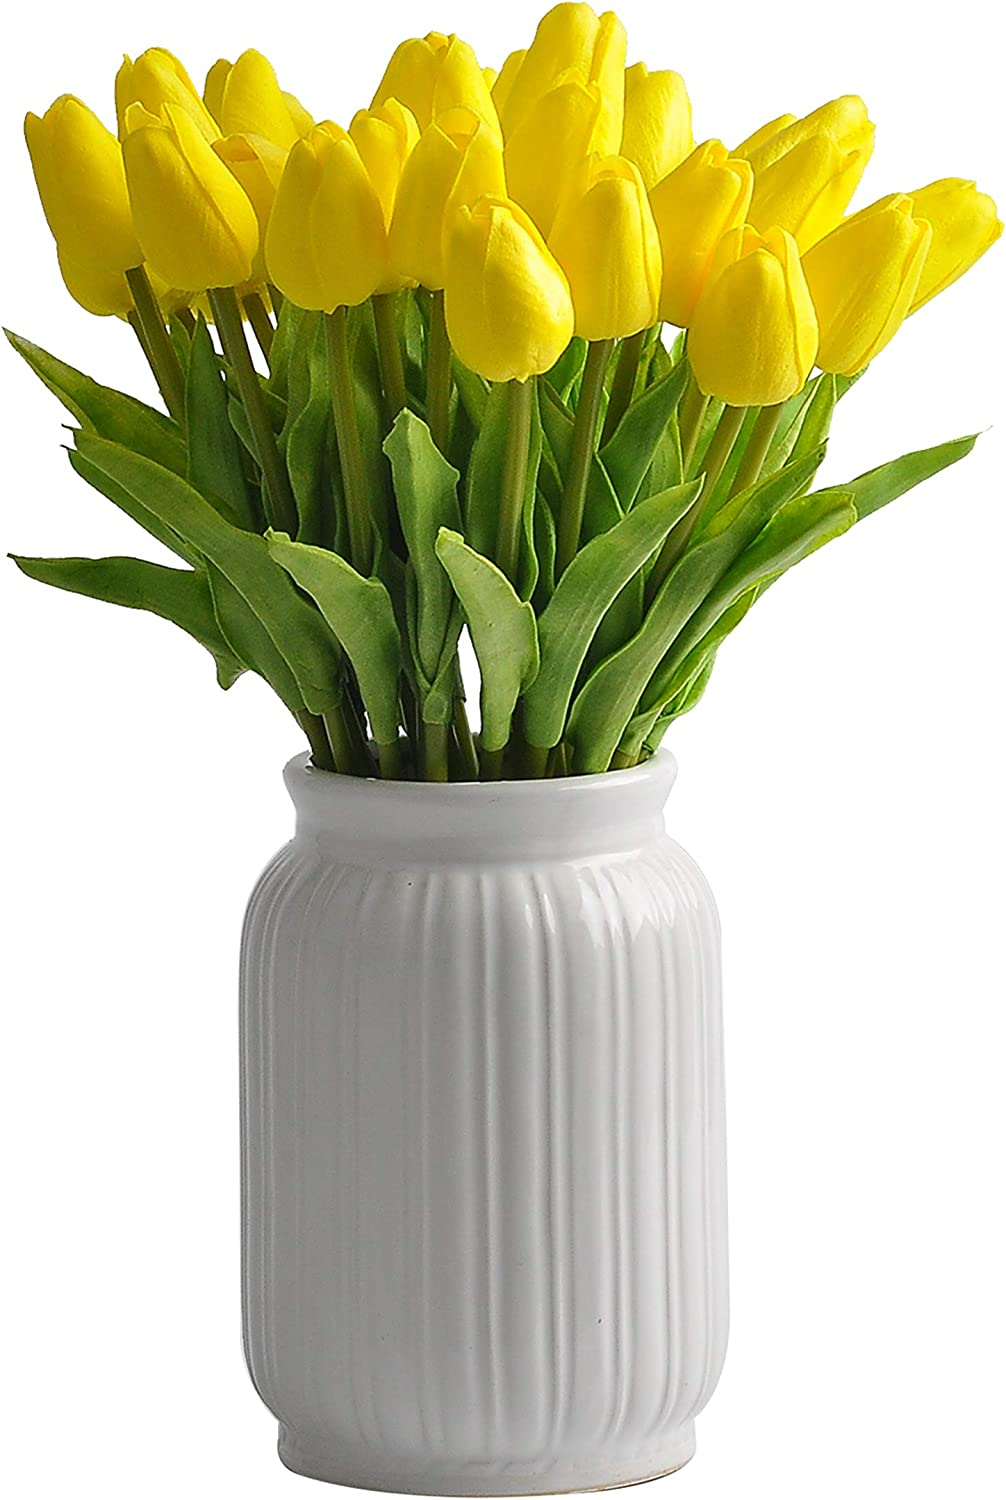 cn-Knight 30pcs Artificial Tulip Ranking TOP1 Real Courier shipping free H Flower Wedding for Touch